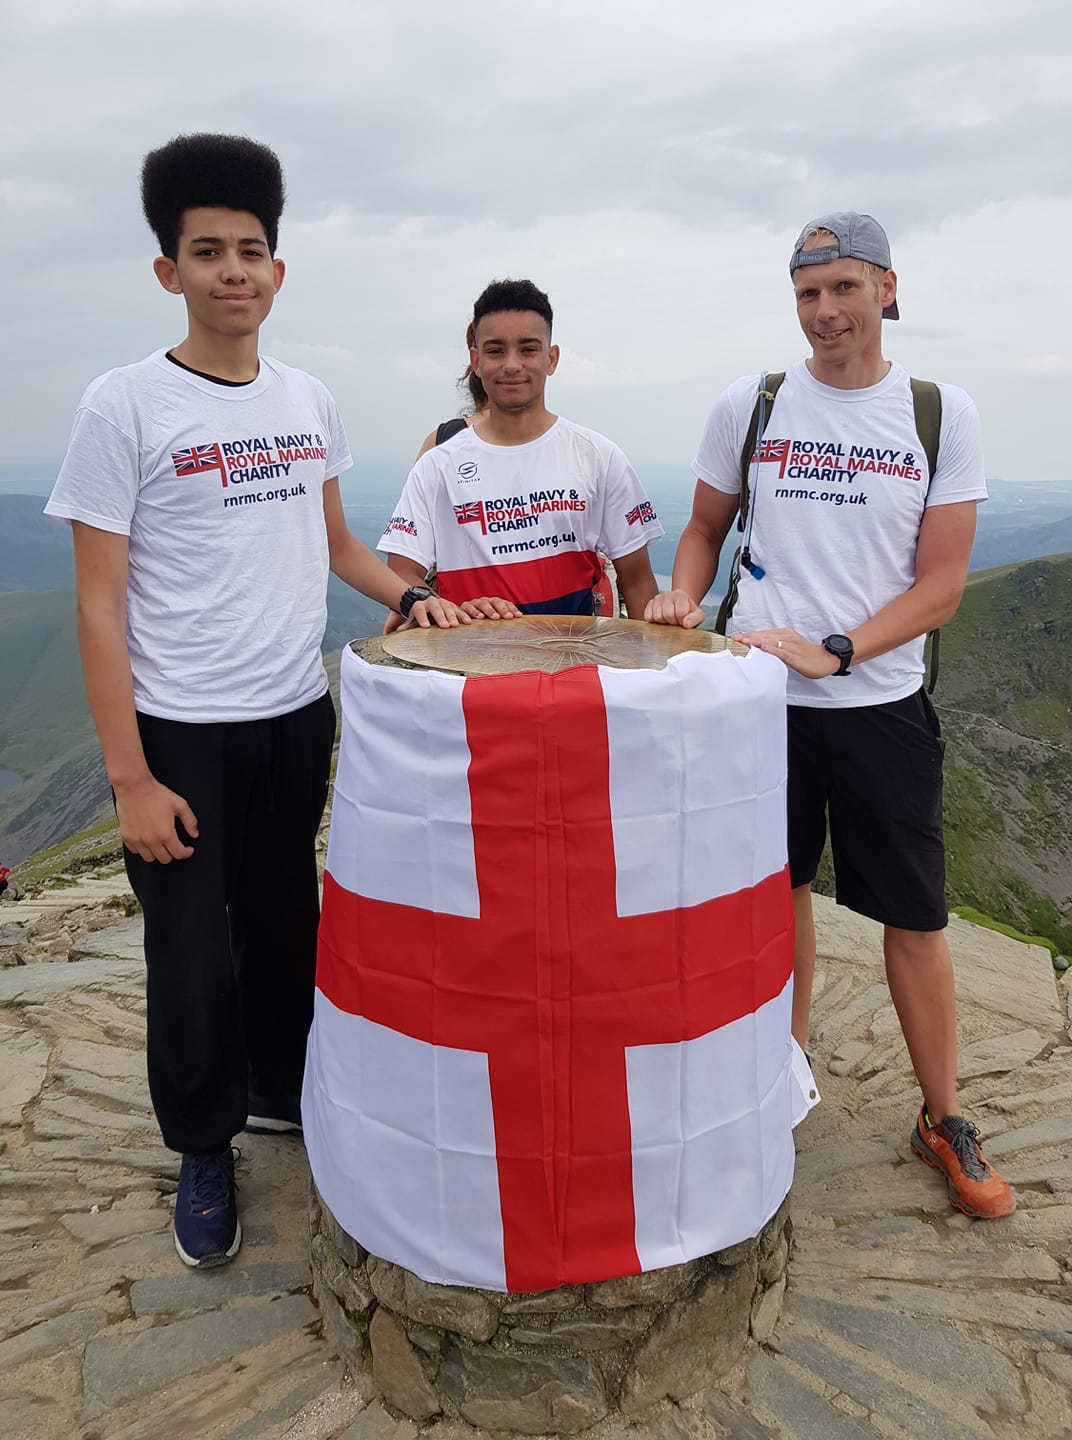 AB Dhillon Walters Climbed Mount Snowdon 18 Times For 18th Birthday